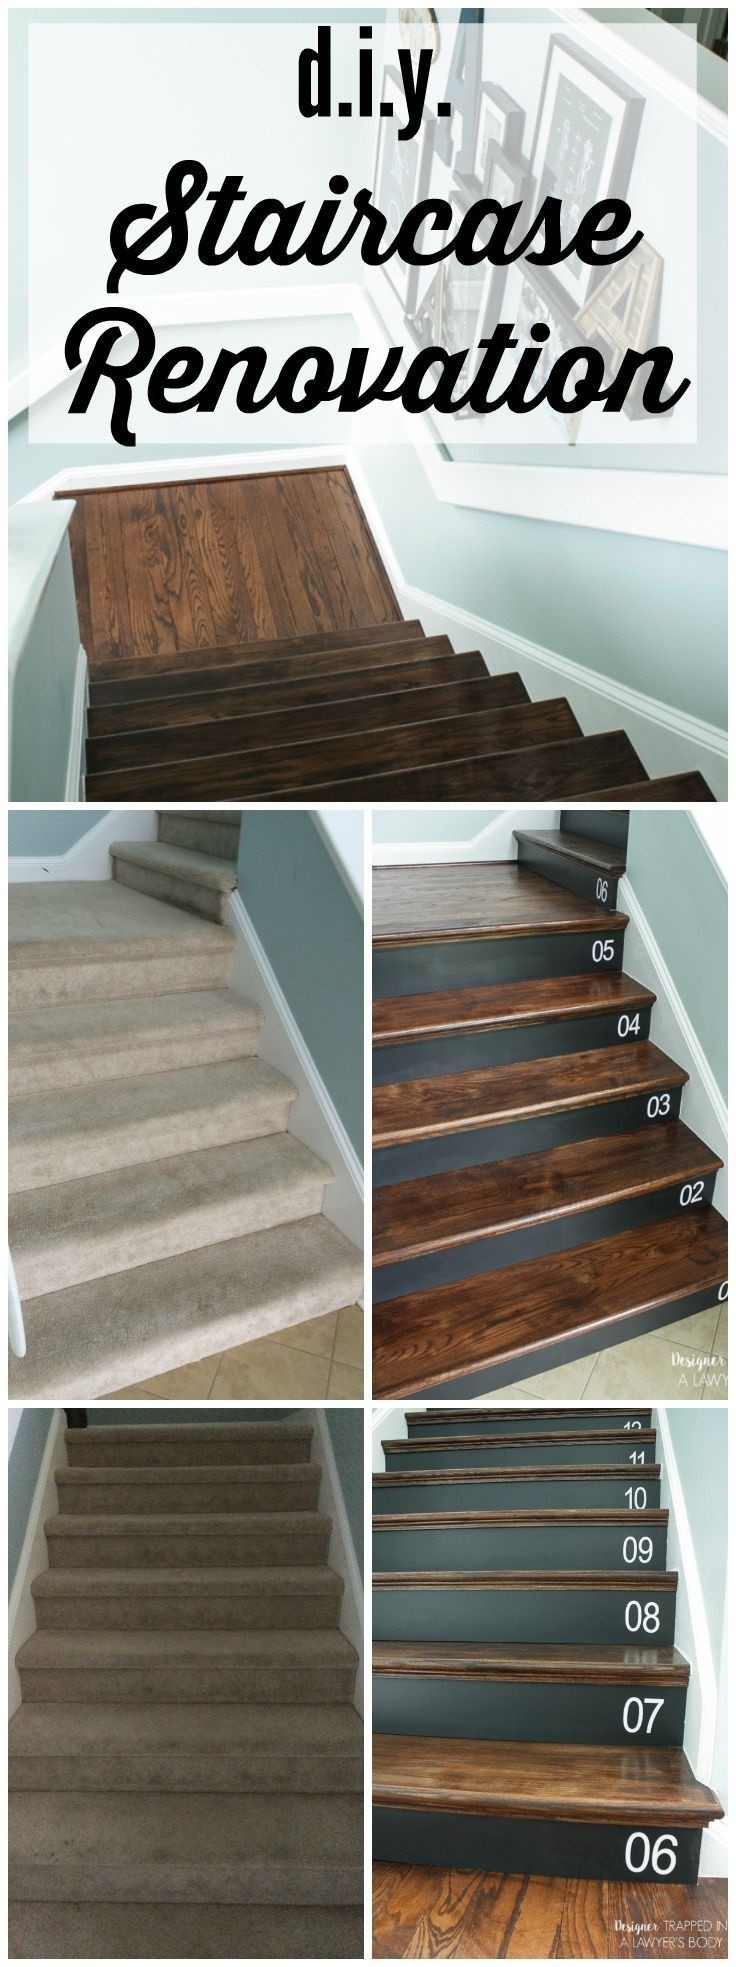 installing hardwood floors on stairs of 13 lovely hardwood stair treads install interior stairs regarding hardwood stair treads install luxury how to install laminate flooring on stairs with railing stock pin